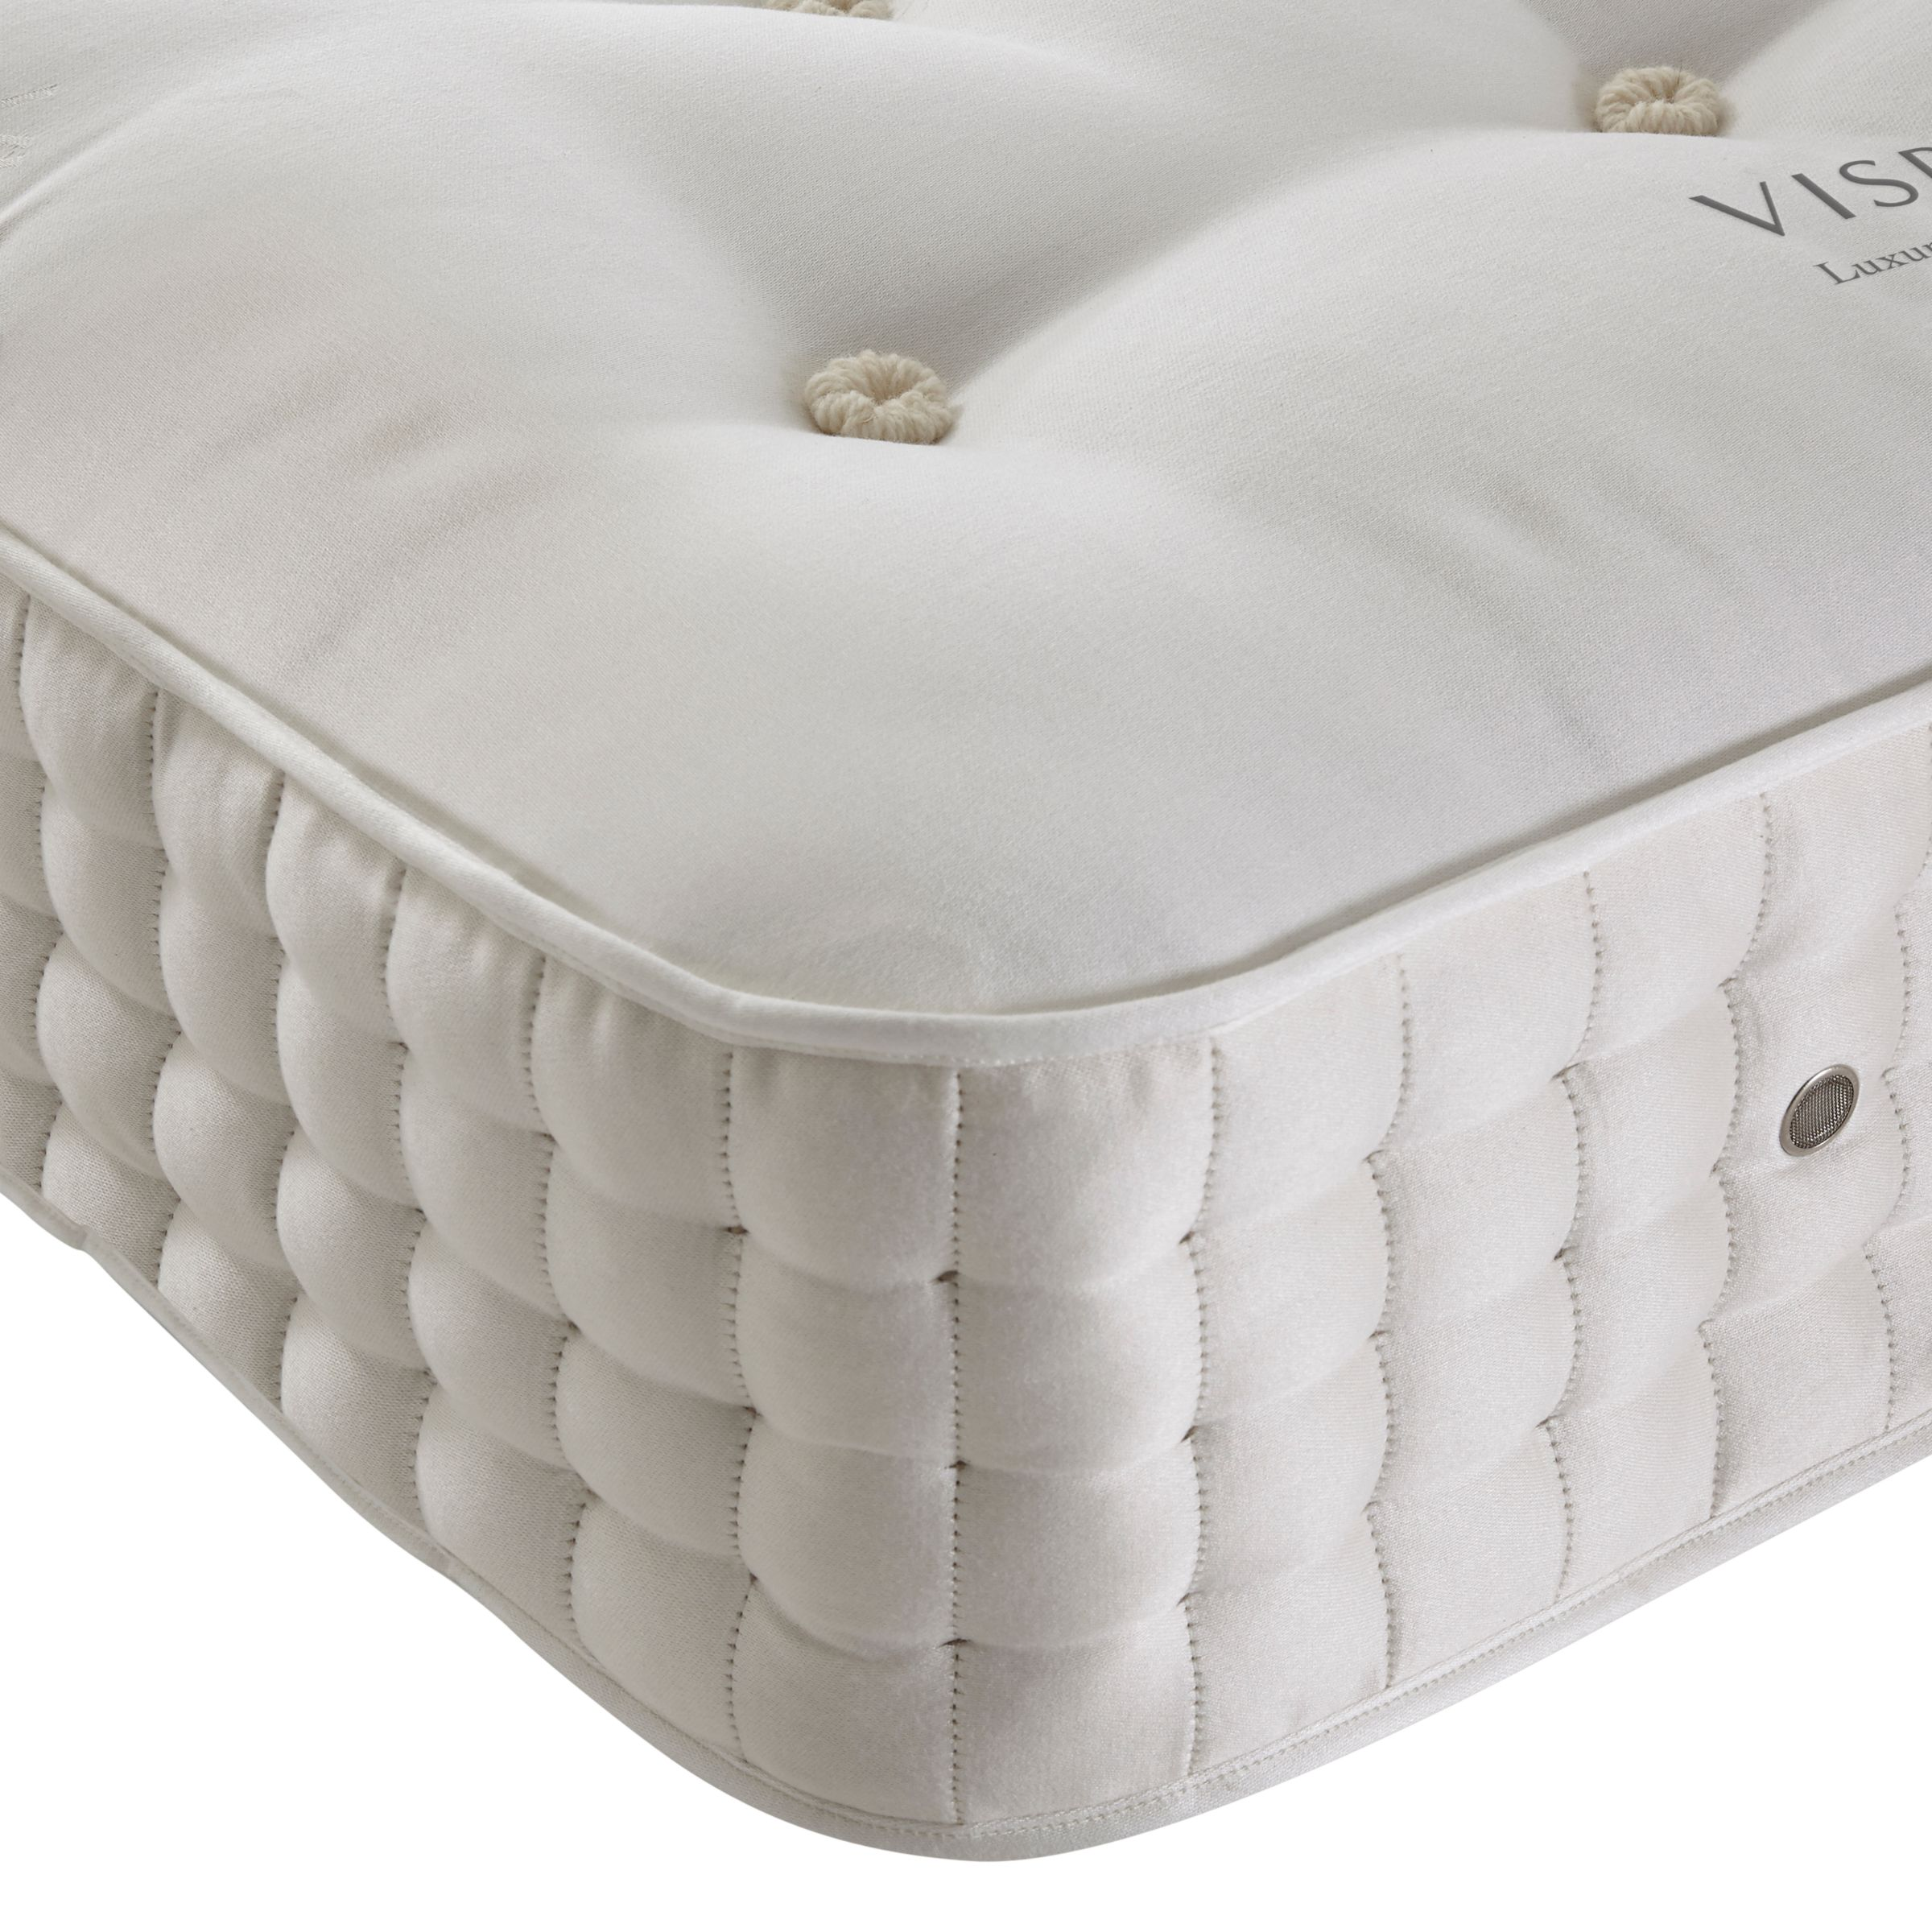 Vi-Spring Stowe Superb Mattress, Large Emperor